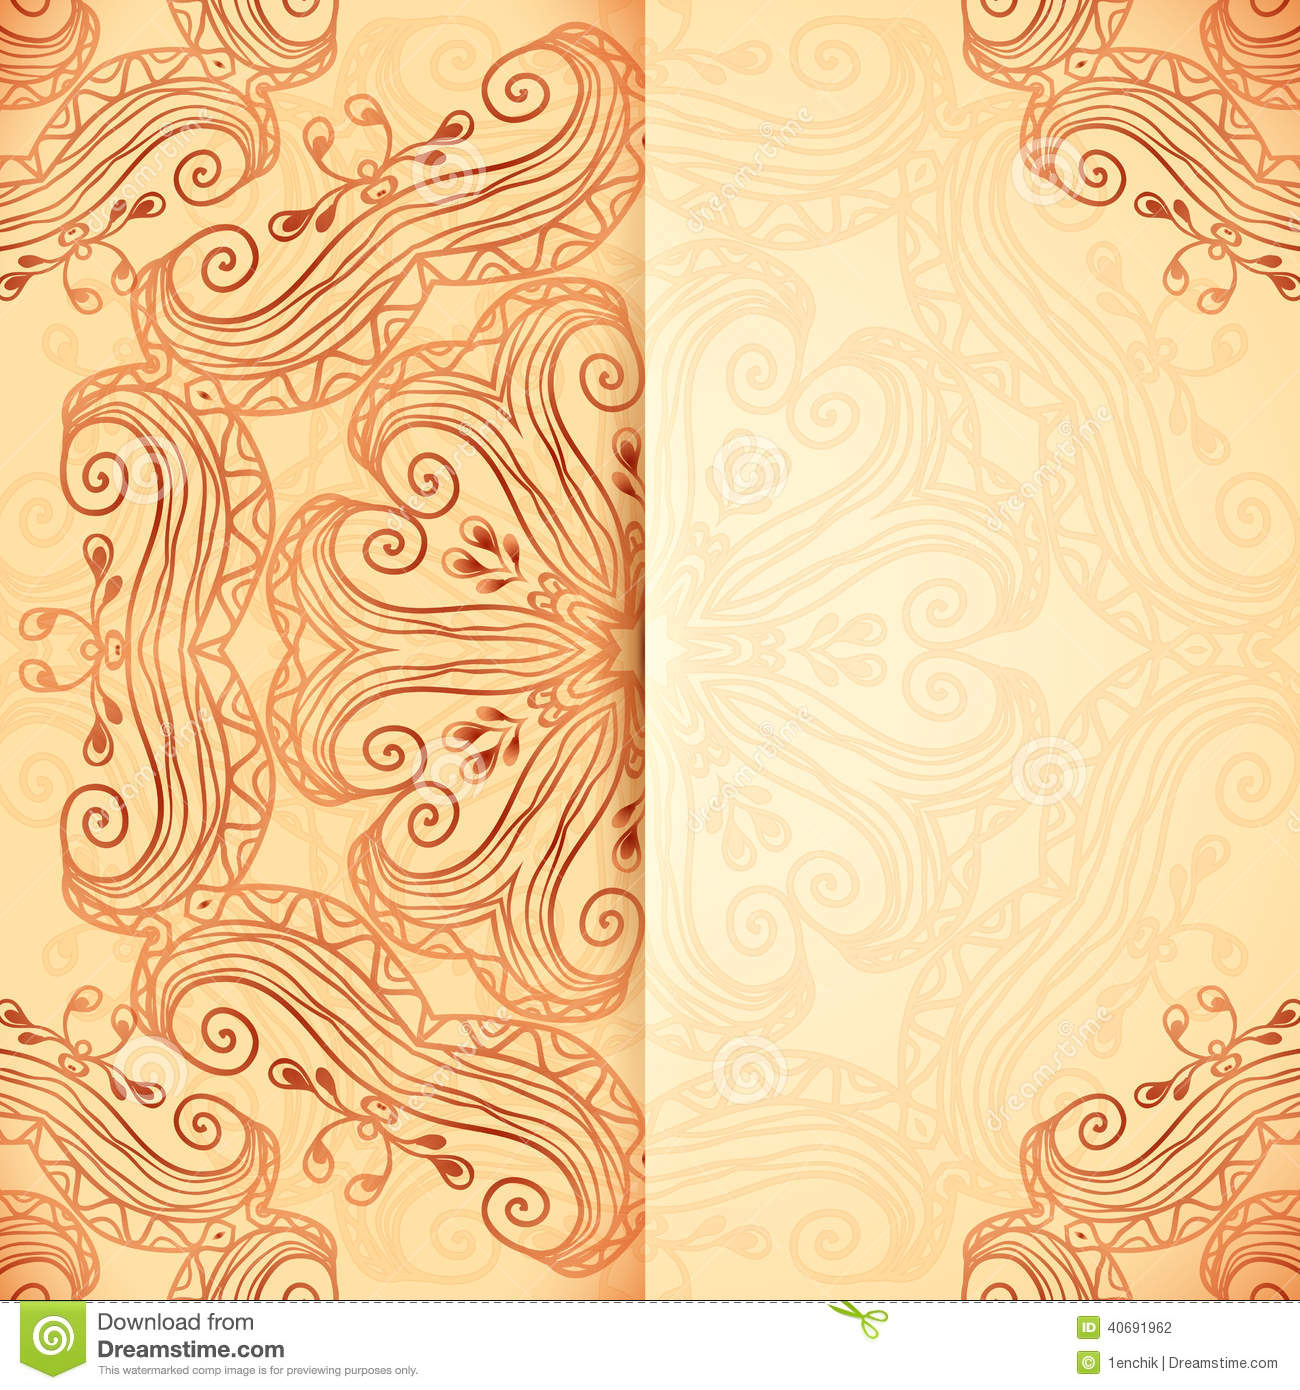 Ornate Vintage Template In Indian Mehndi Style Stock ...